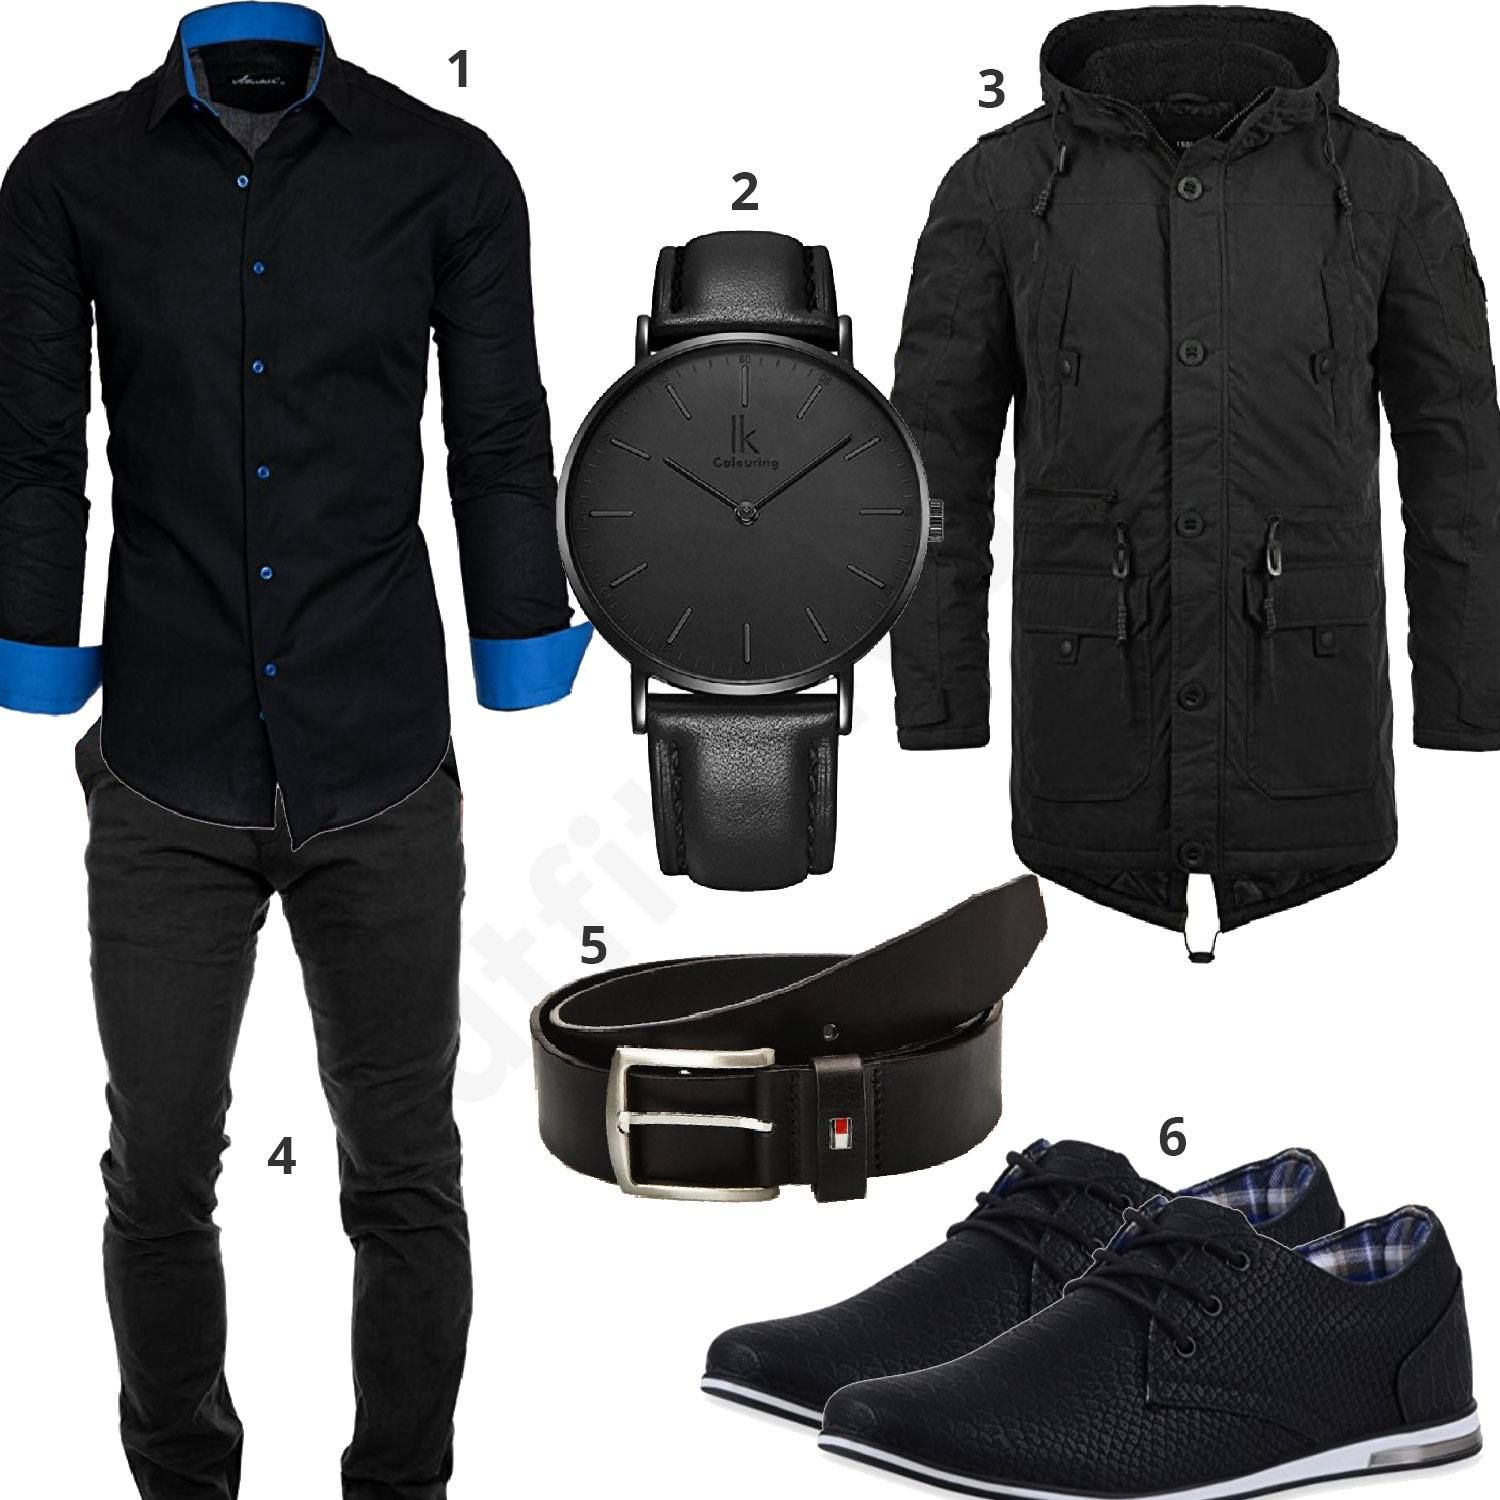 Schwarzes Business-Outfit mit Parka (m0766)  outfit  style  herrenmode   männermode  fashion  menswear  herren  männer  mode  menstyle  mensfashion   menswear ... 8caf2d462f